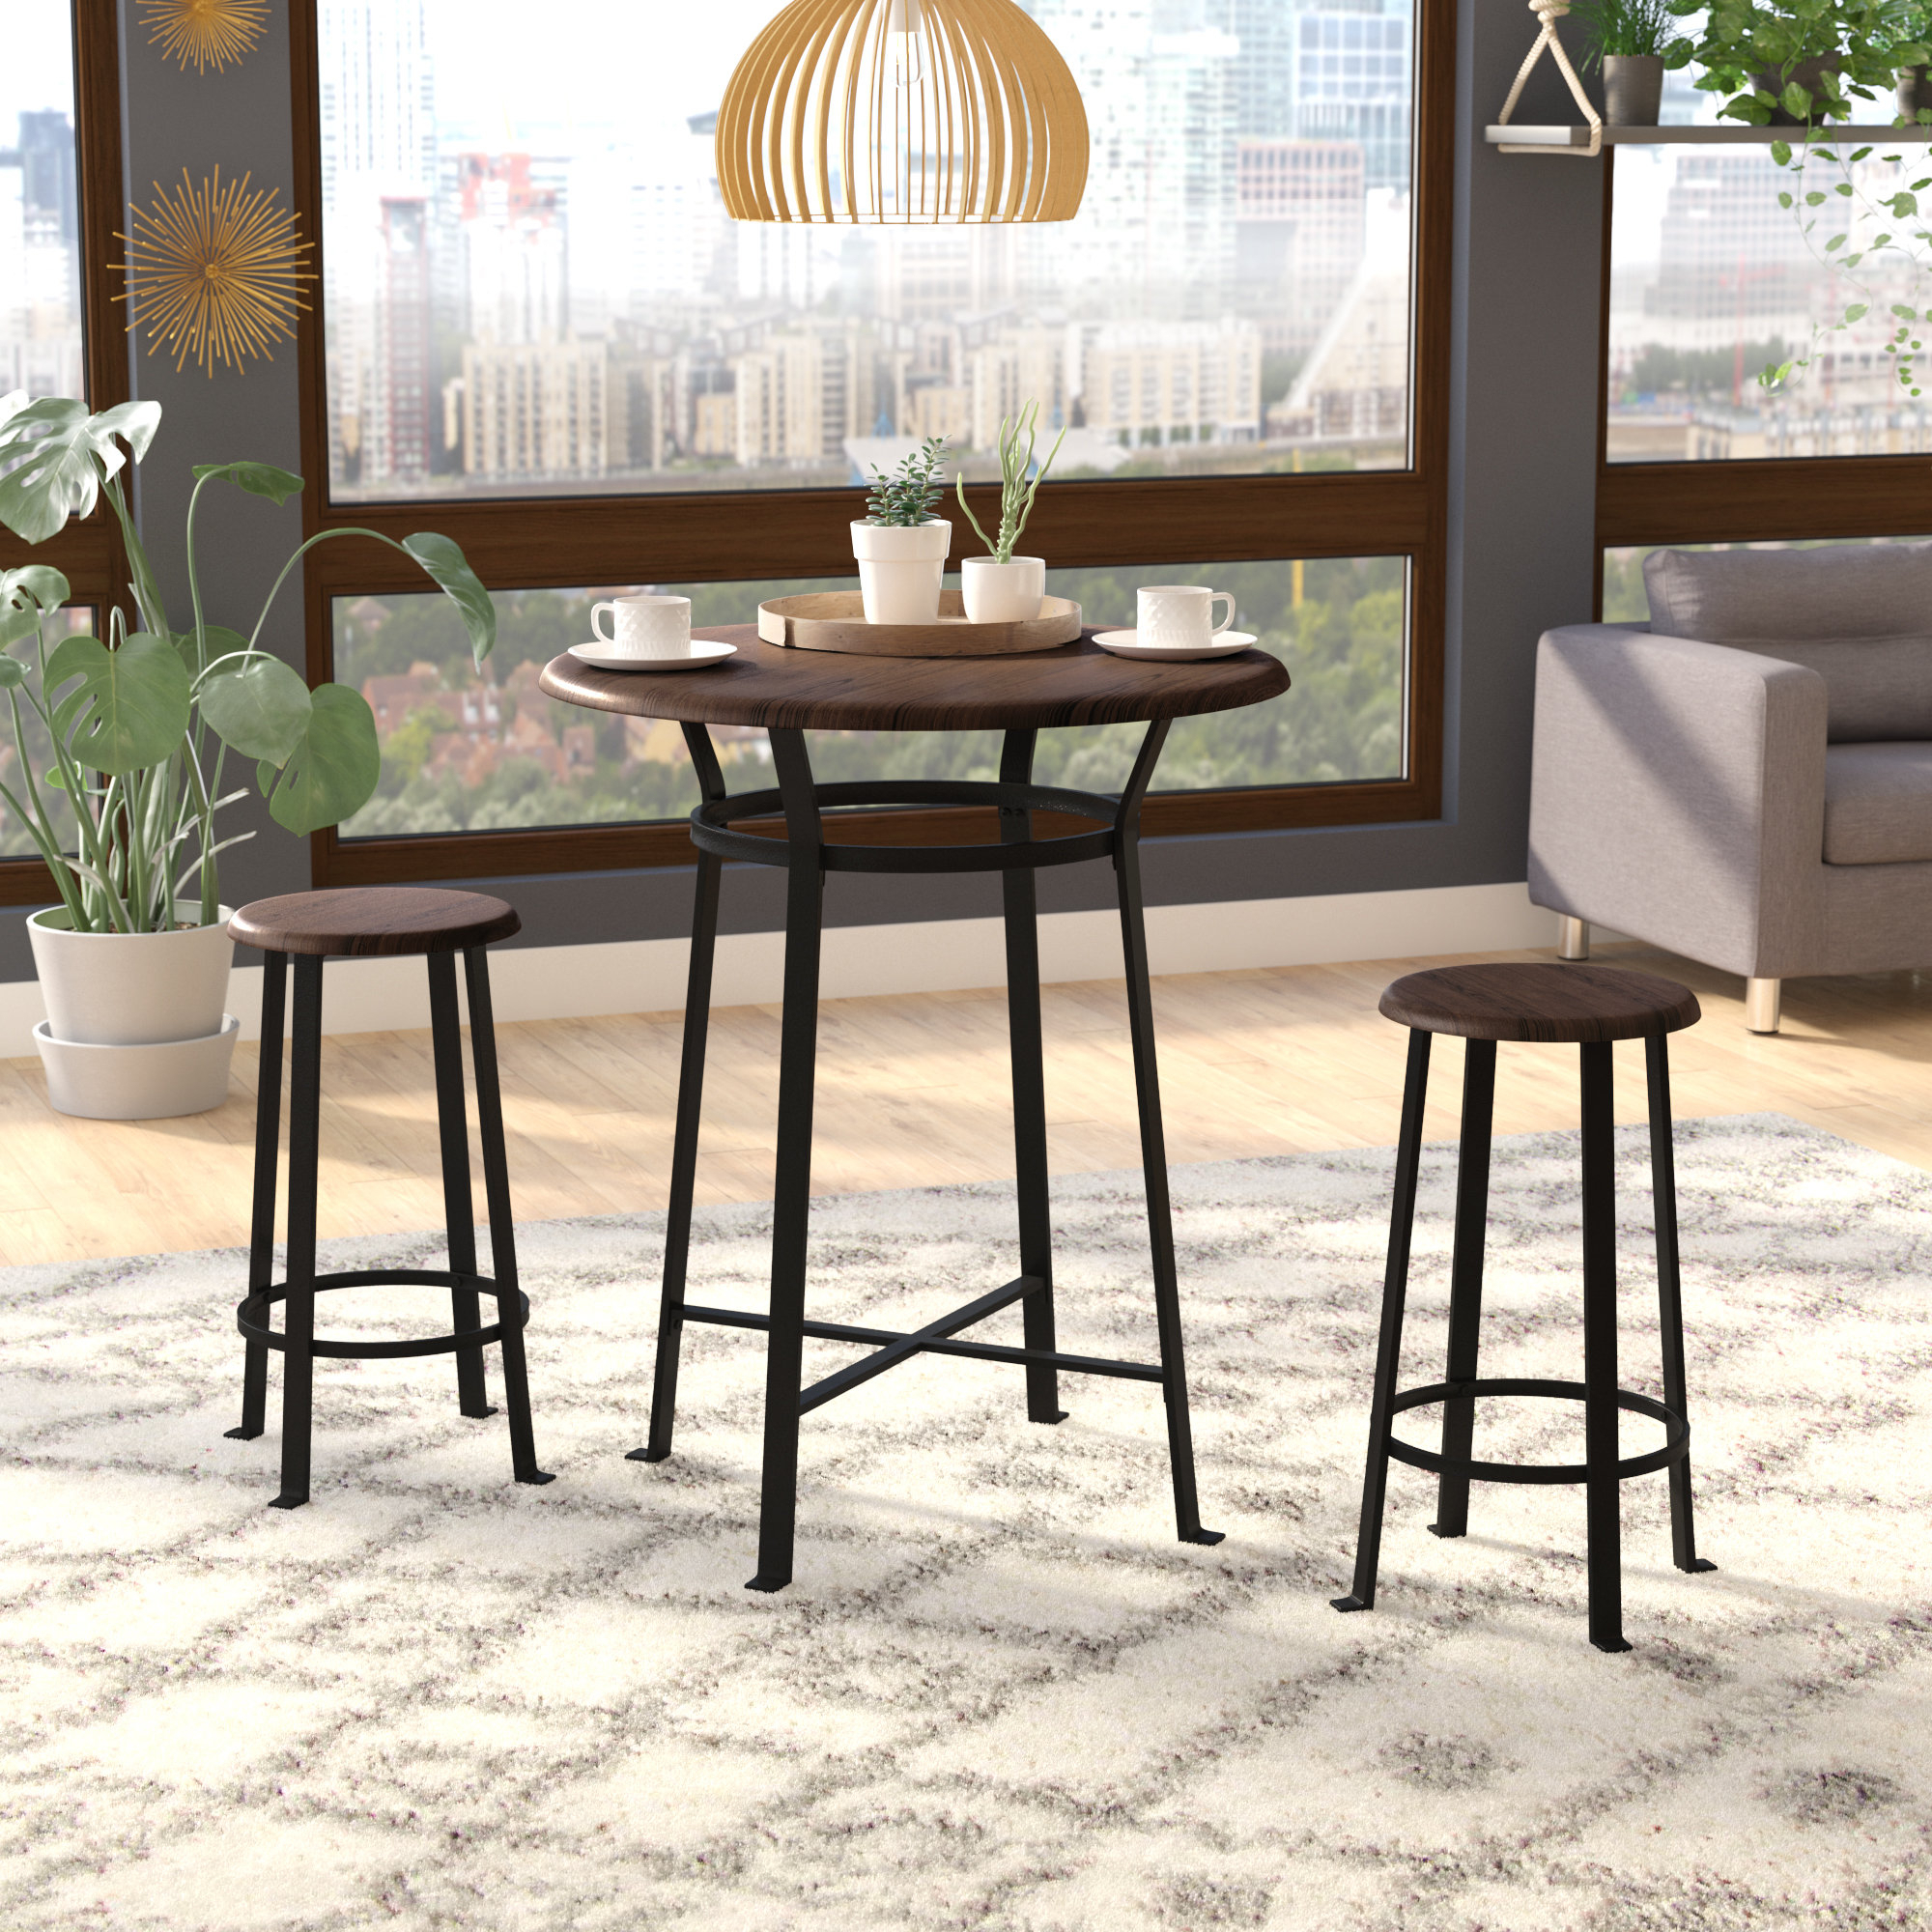 Ligon 3 Piece Breakfast Nook Dining Sets With Well Known Ebern Designs Grandview 3 Piece Solid Wood Dining Set & Reviews (View 9 of 25)